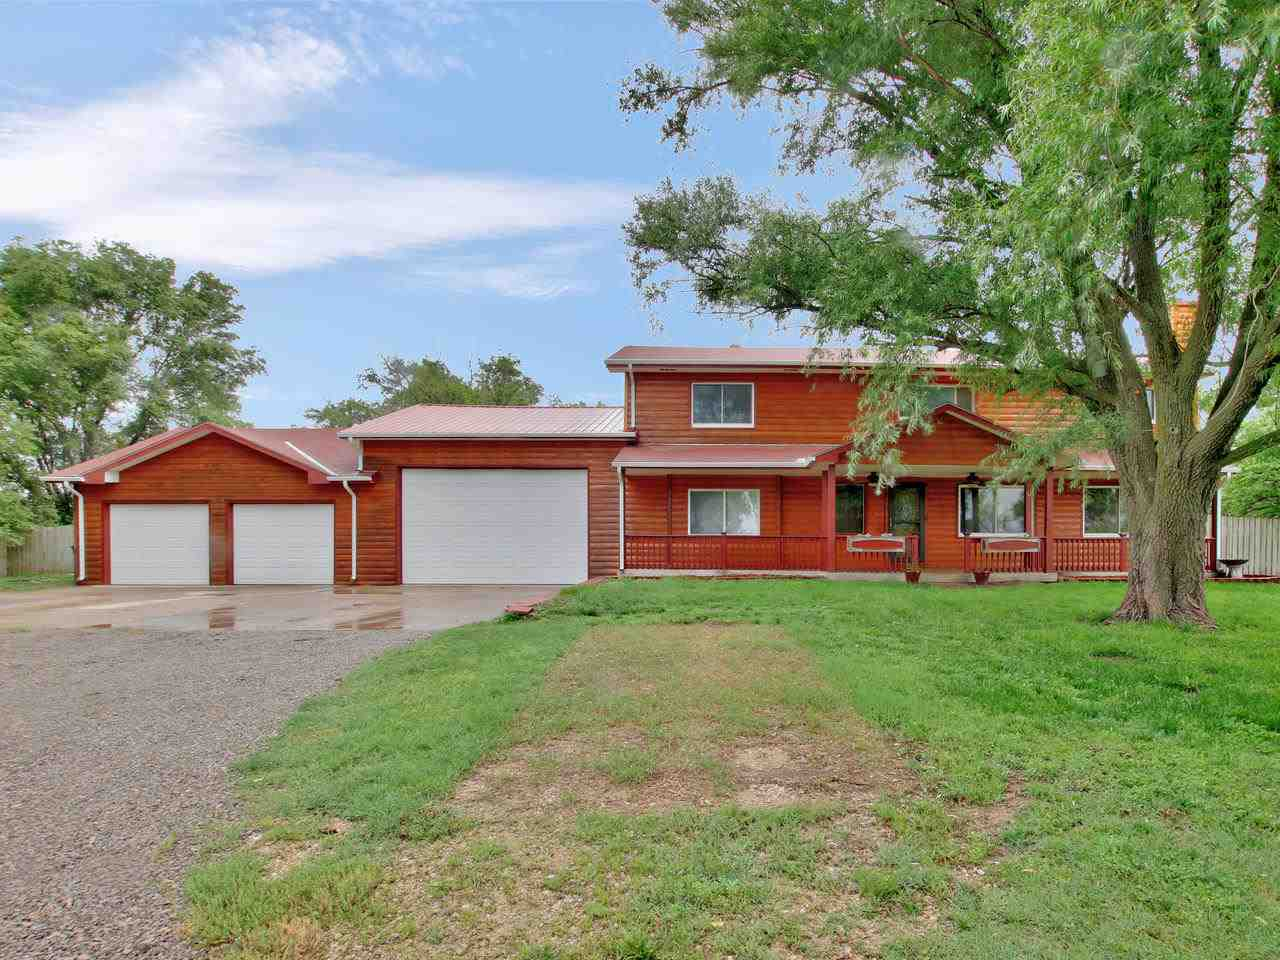 Welcome to this beautiful 4 bedroom home located on just under 2 acres in the wonderful Clearwater s